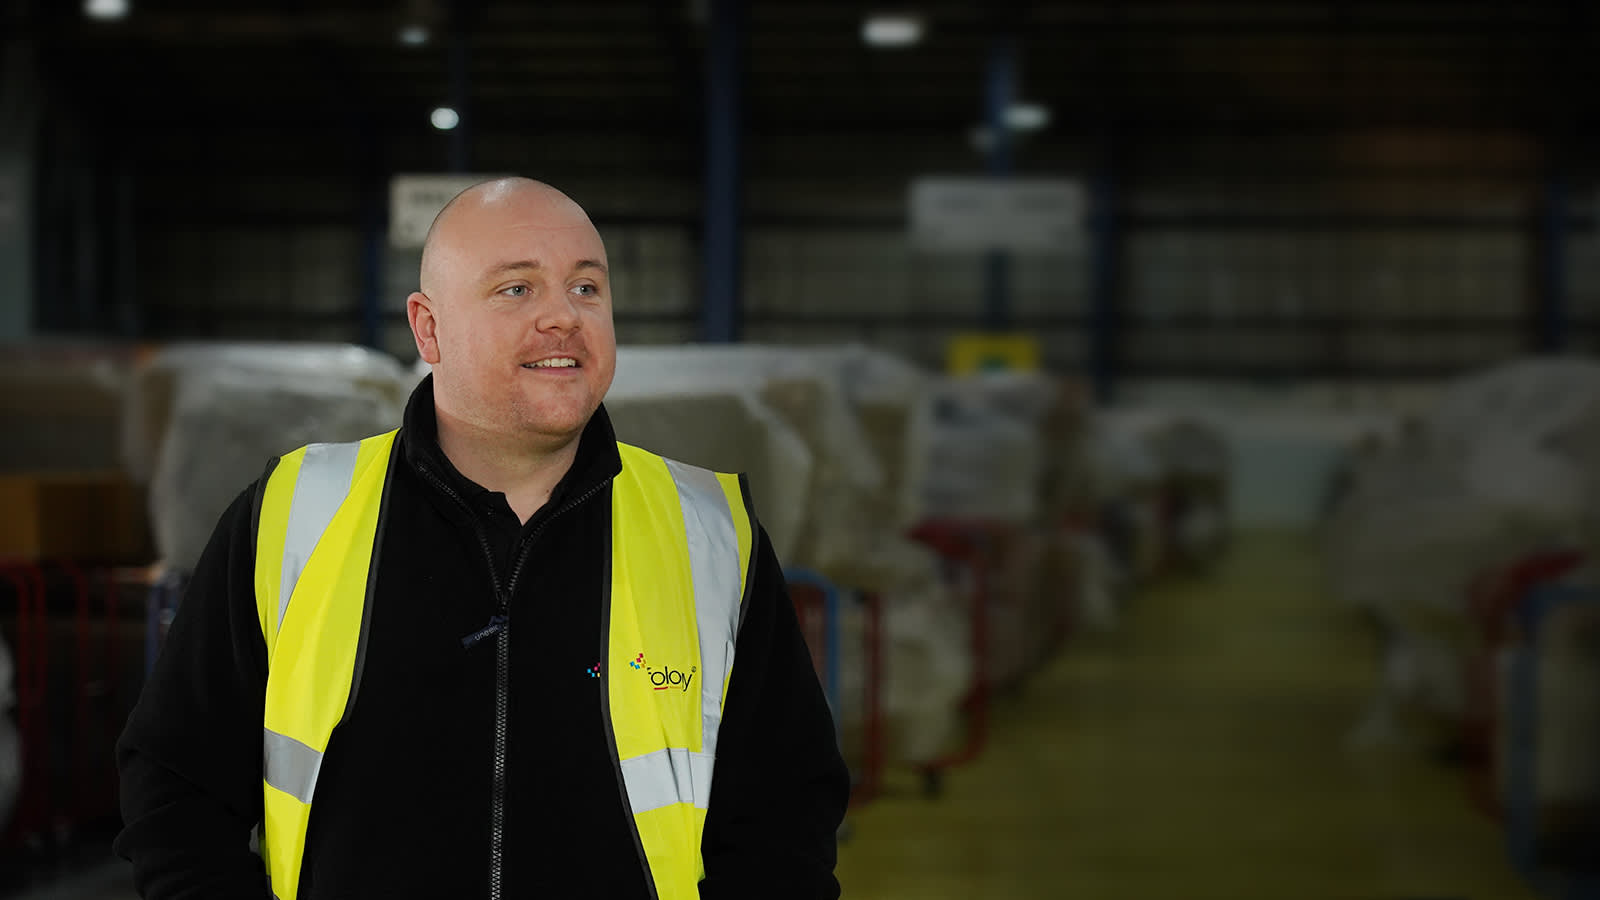 Chris, Warehouse Manager of Golborne Depot